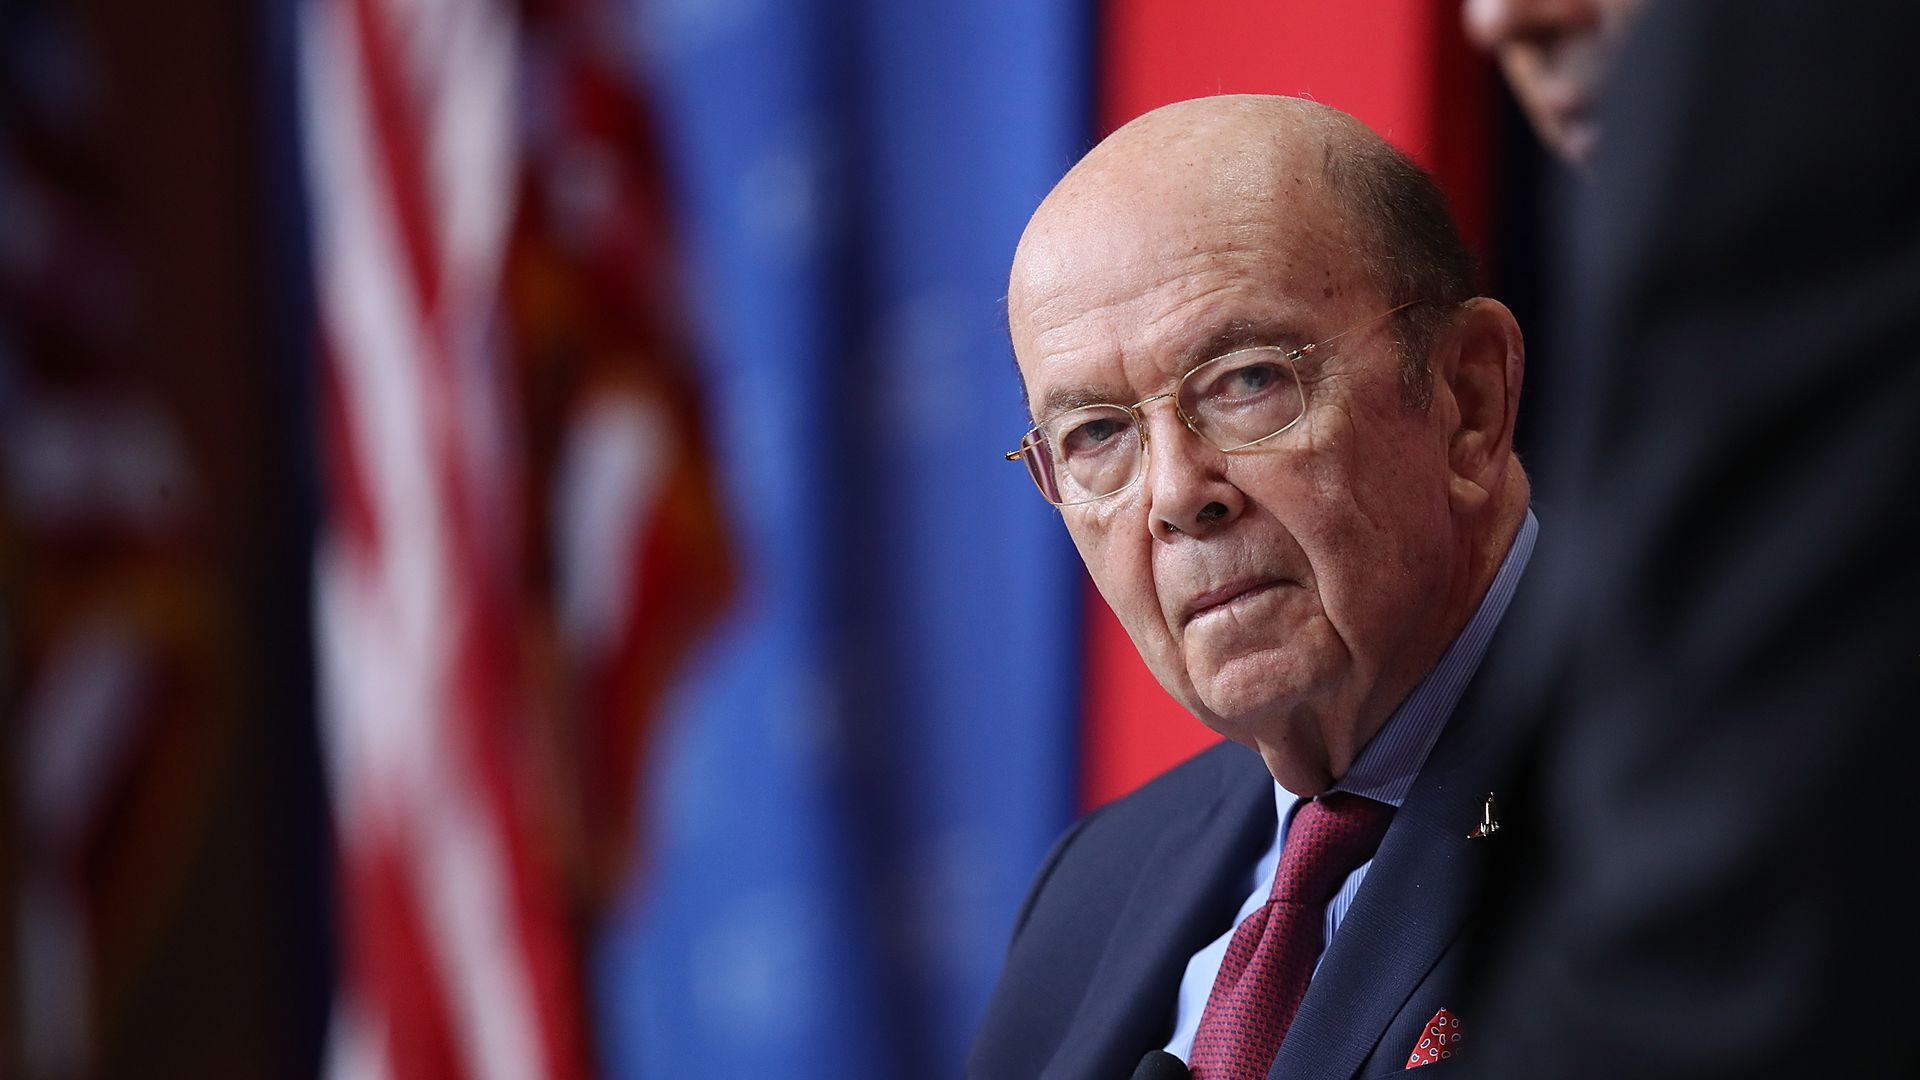 Wilbur Ross in front of an American flag